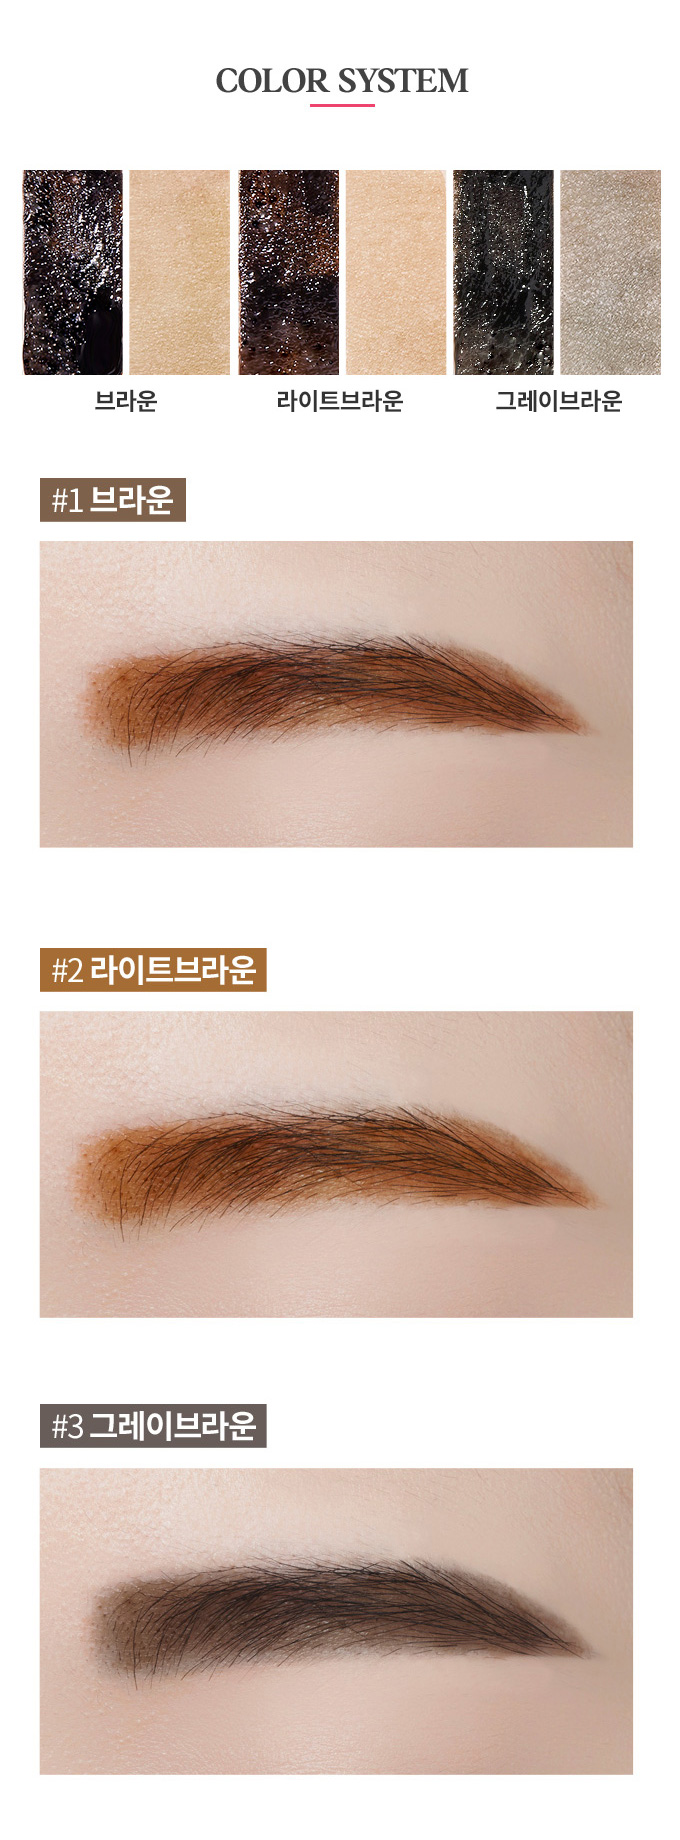 [ Etude House ] Etude House Tint My Brows Gel Tint [#2 Light Brown]